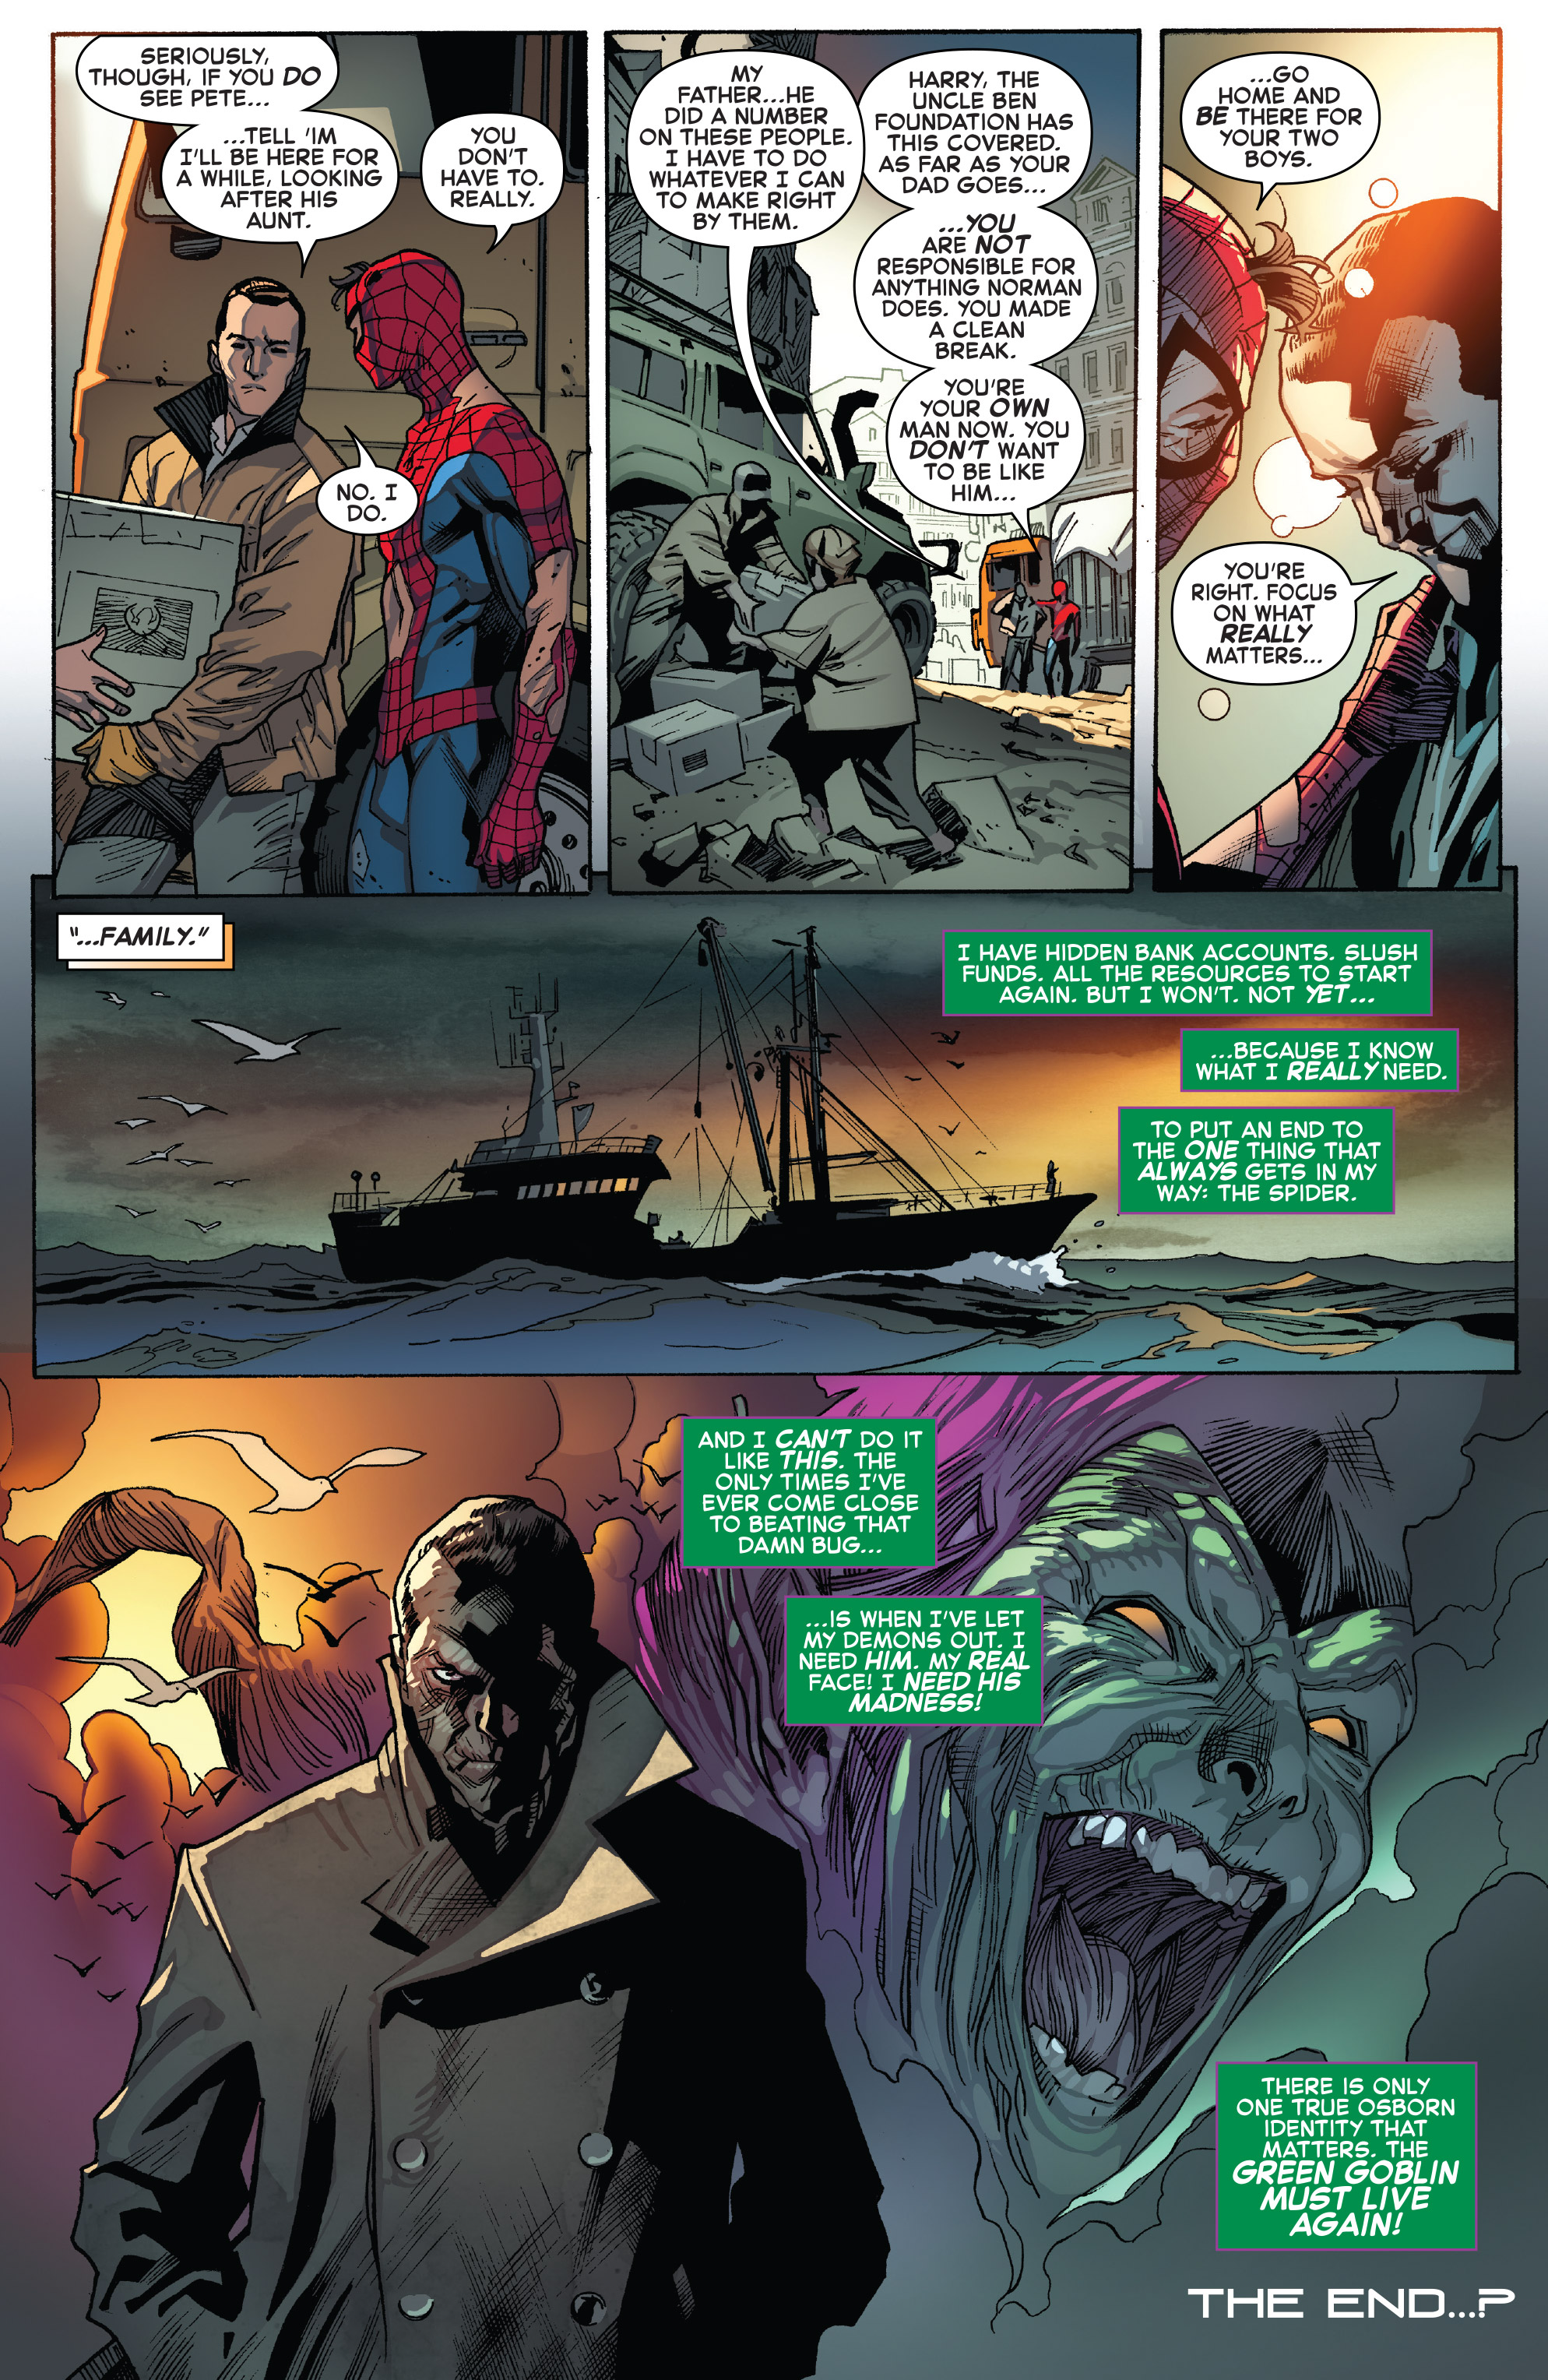 Read online The Amazing Spider-Man (2015) comic -  Issue #28 - 20